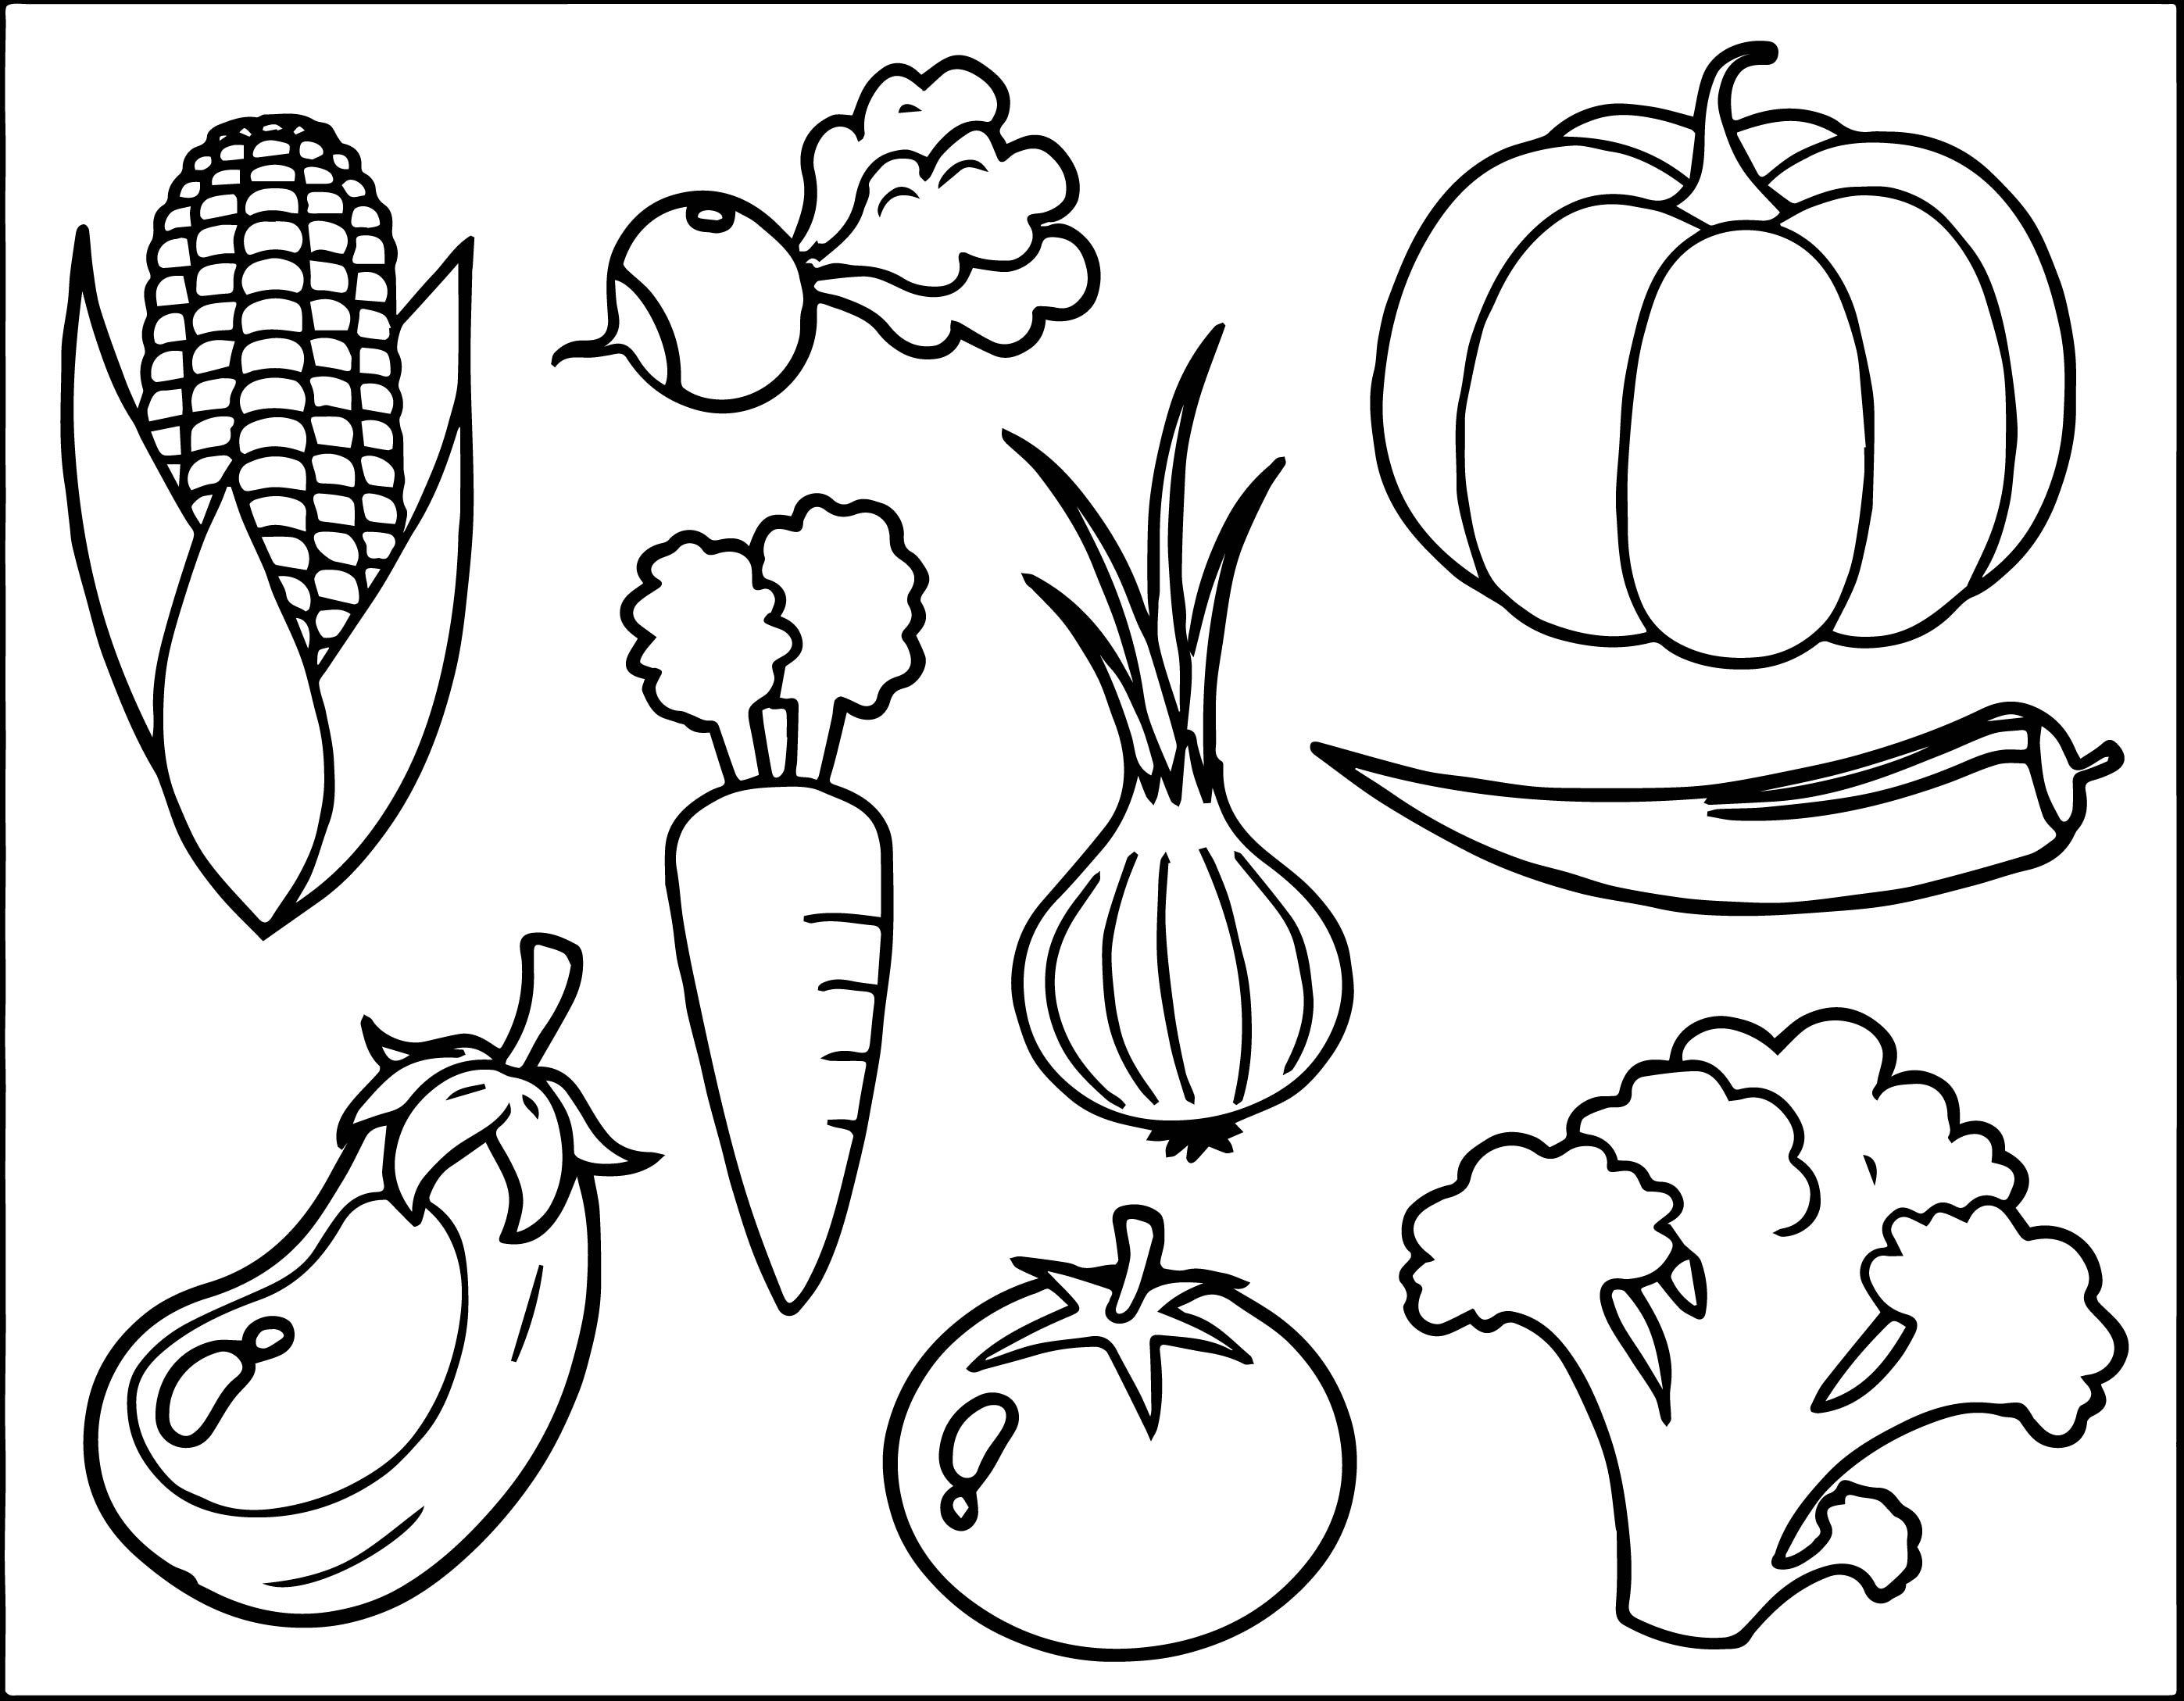 colouring pictures of vegetables ateliê coloriz desenhos vegetais colorir vegetables colouring pictures of